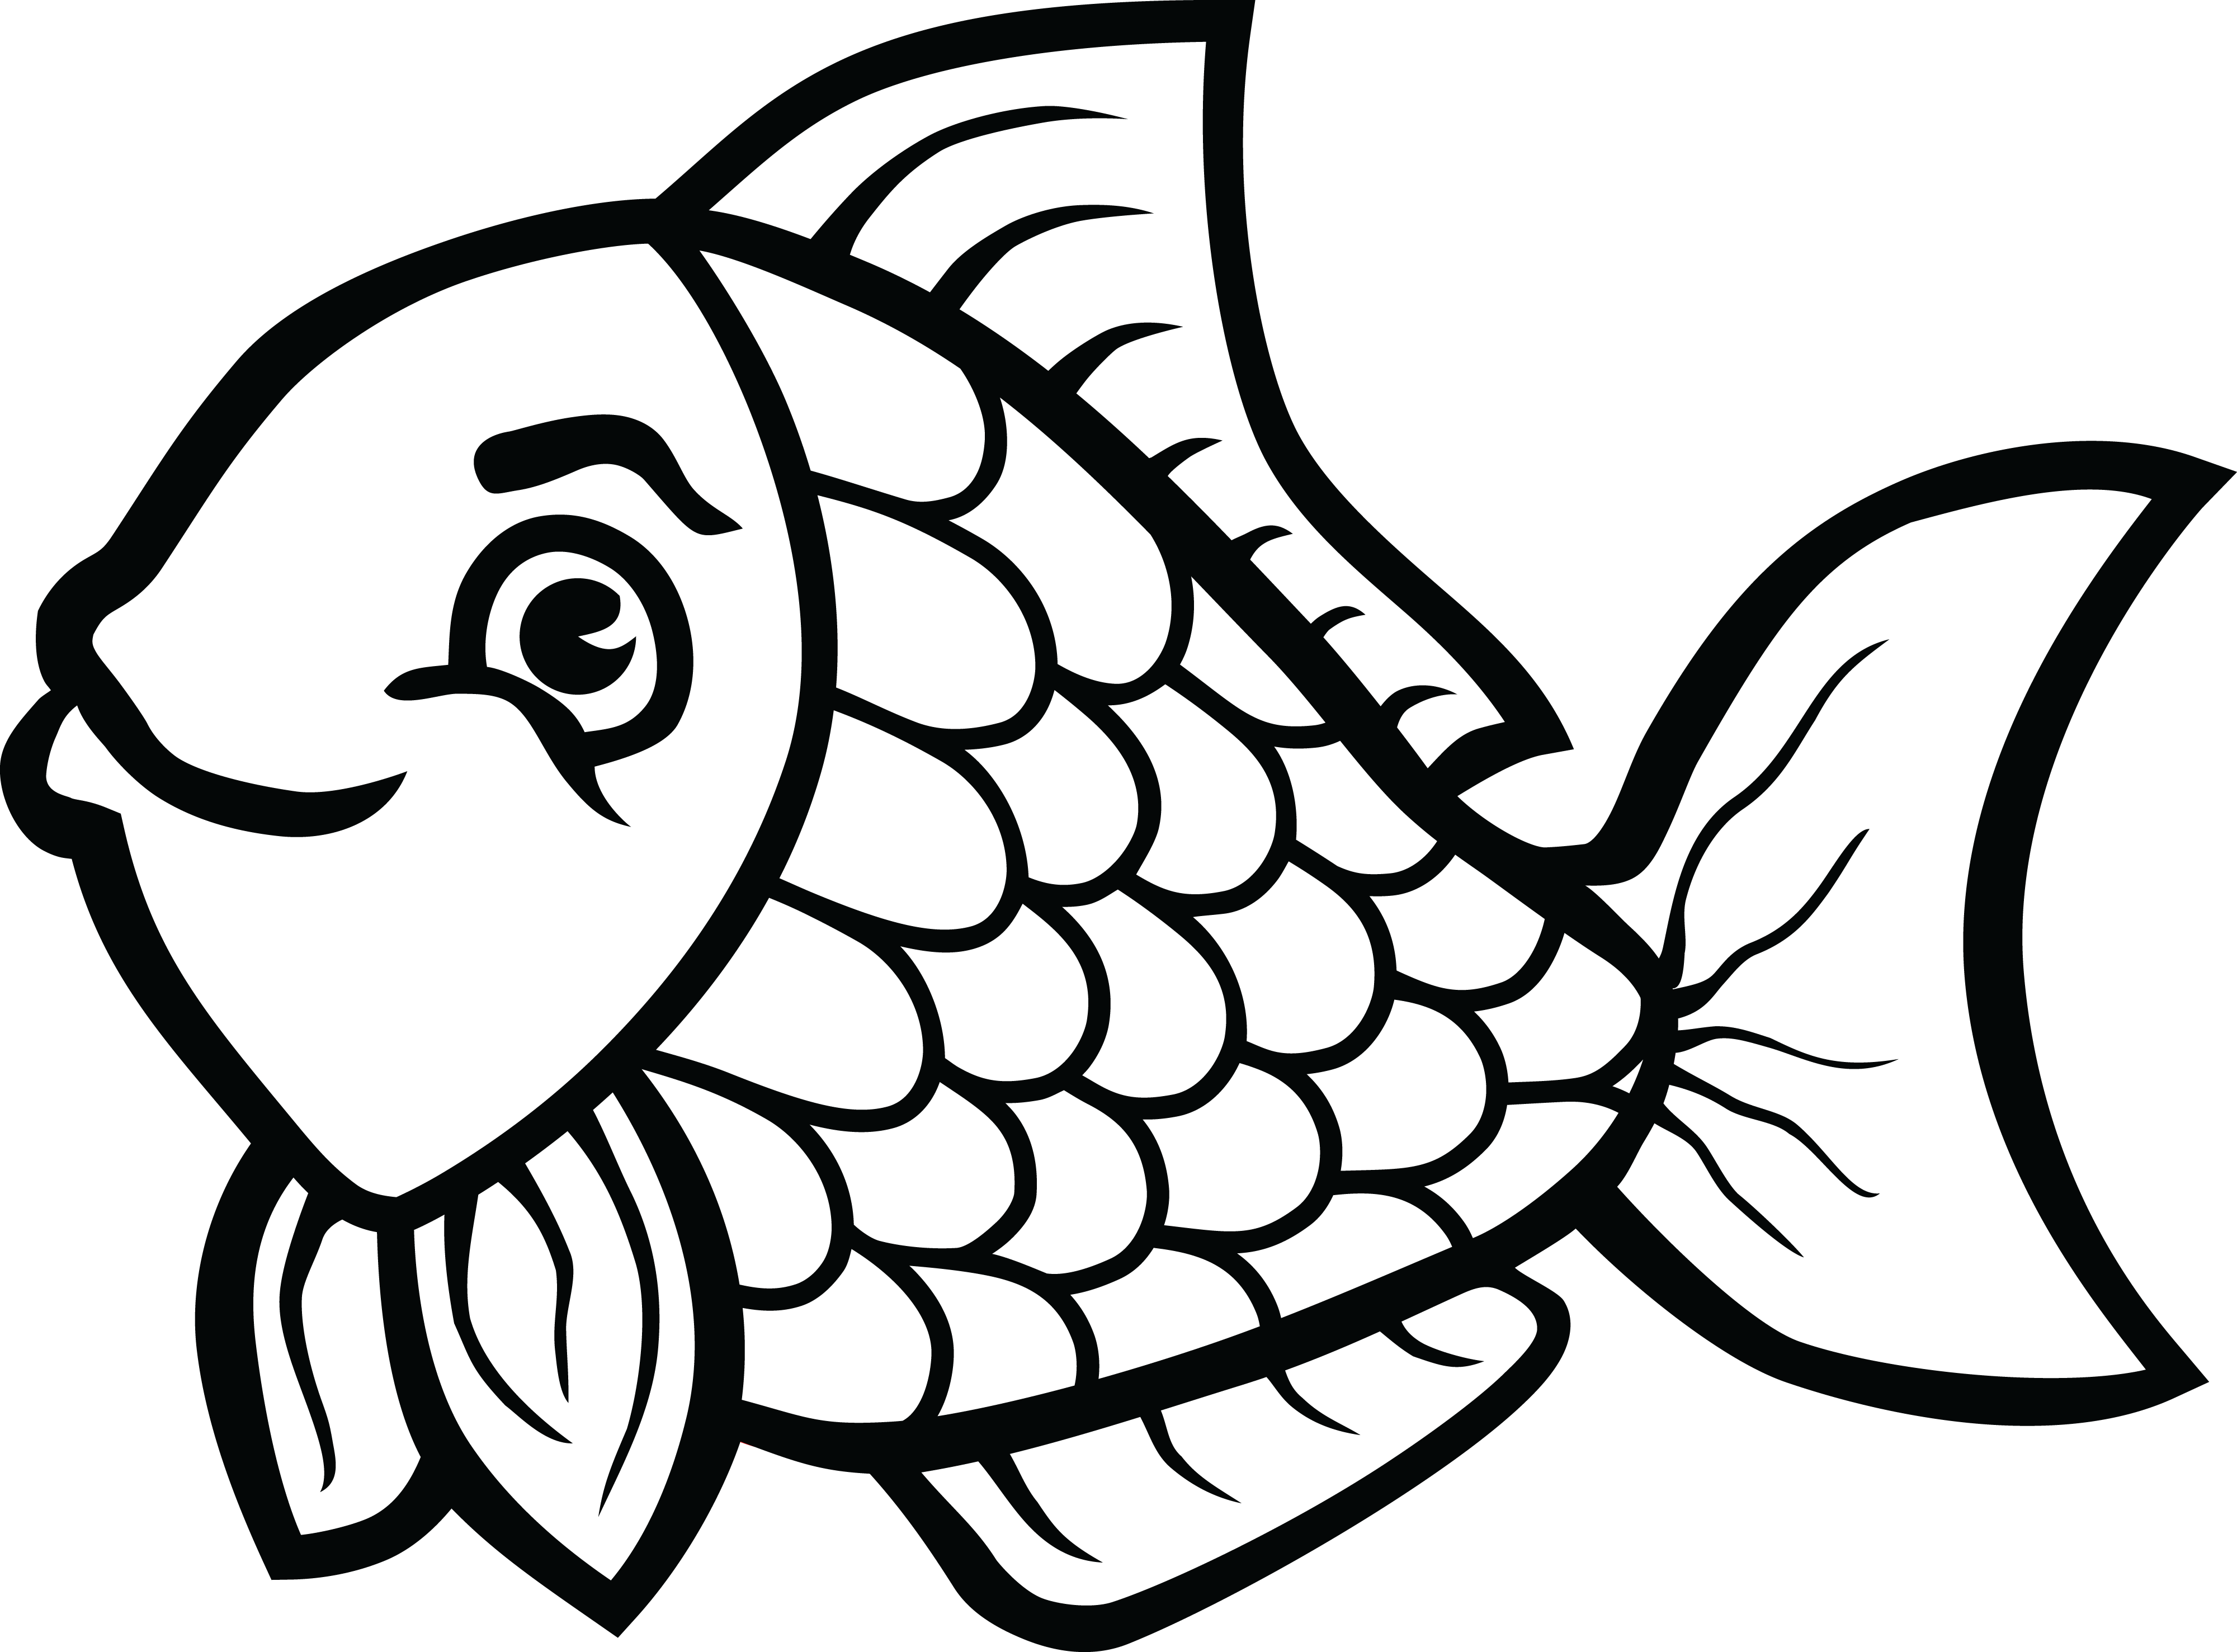 Fish Png Black And White Free Fish Black And White Png Transparent Images 2990 Pngio